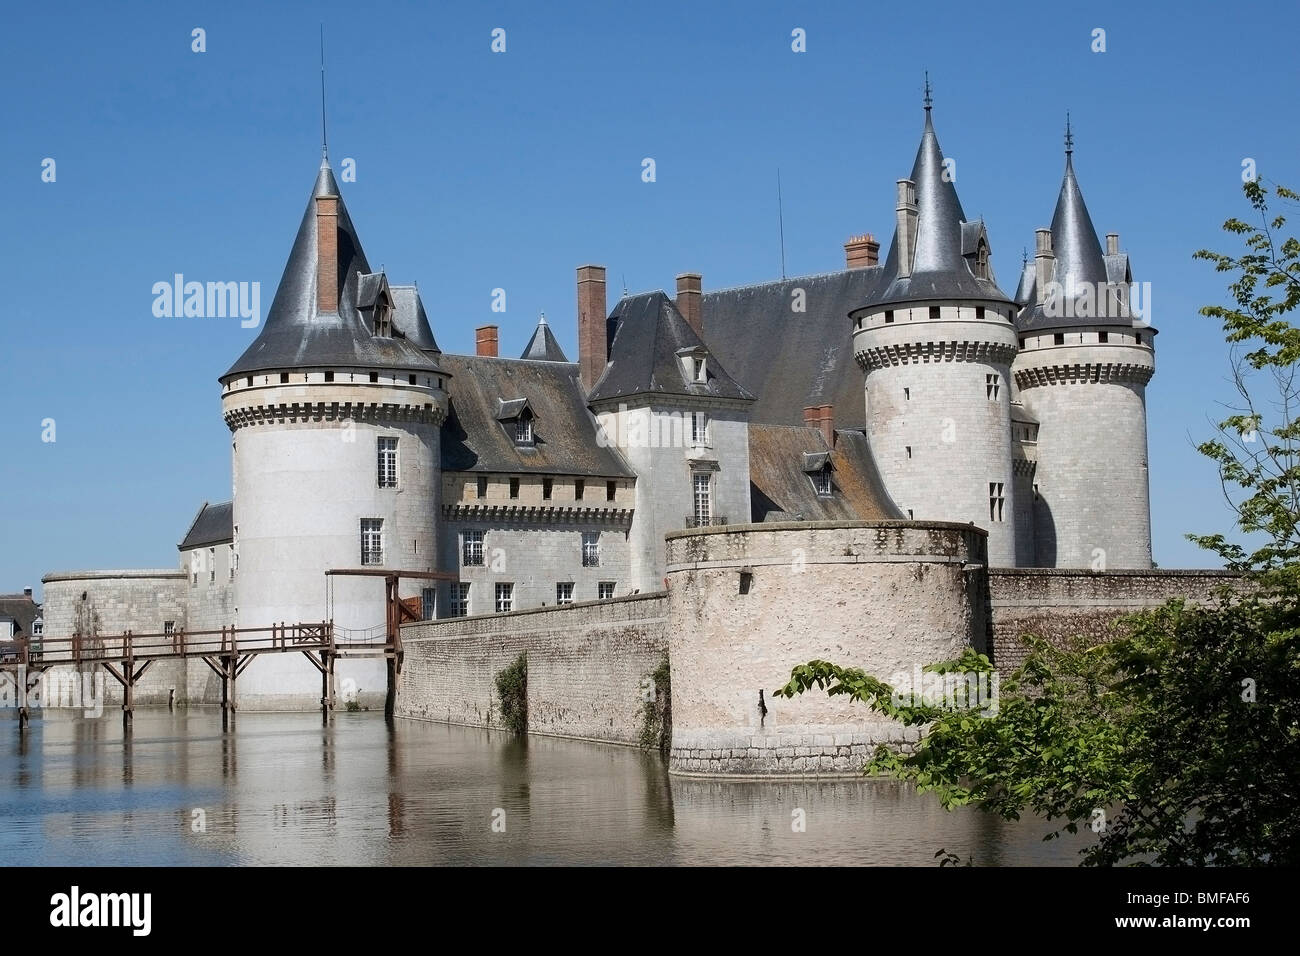 photograph of the castle of the sully-on-Loire in the loiret - Stock Image